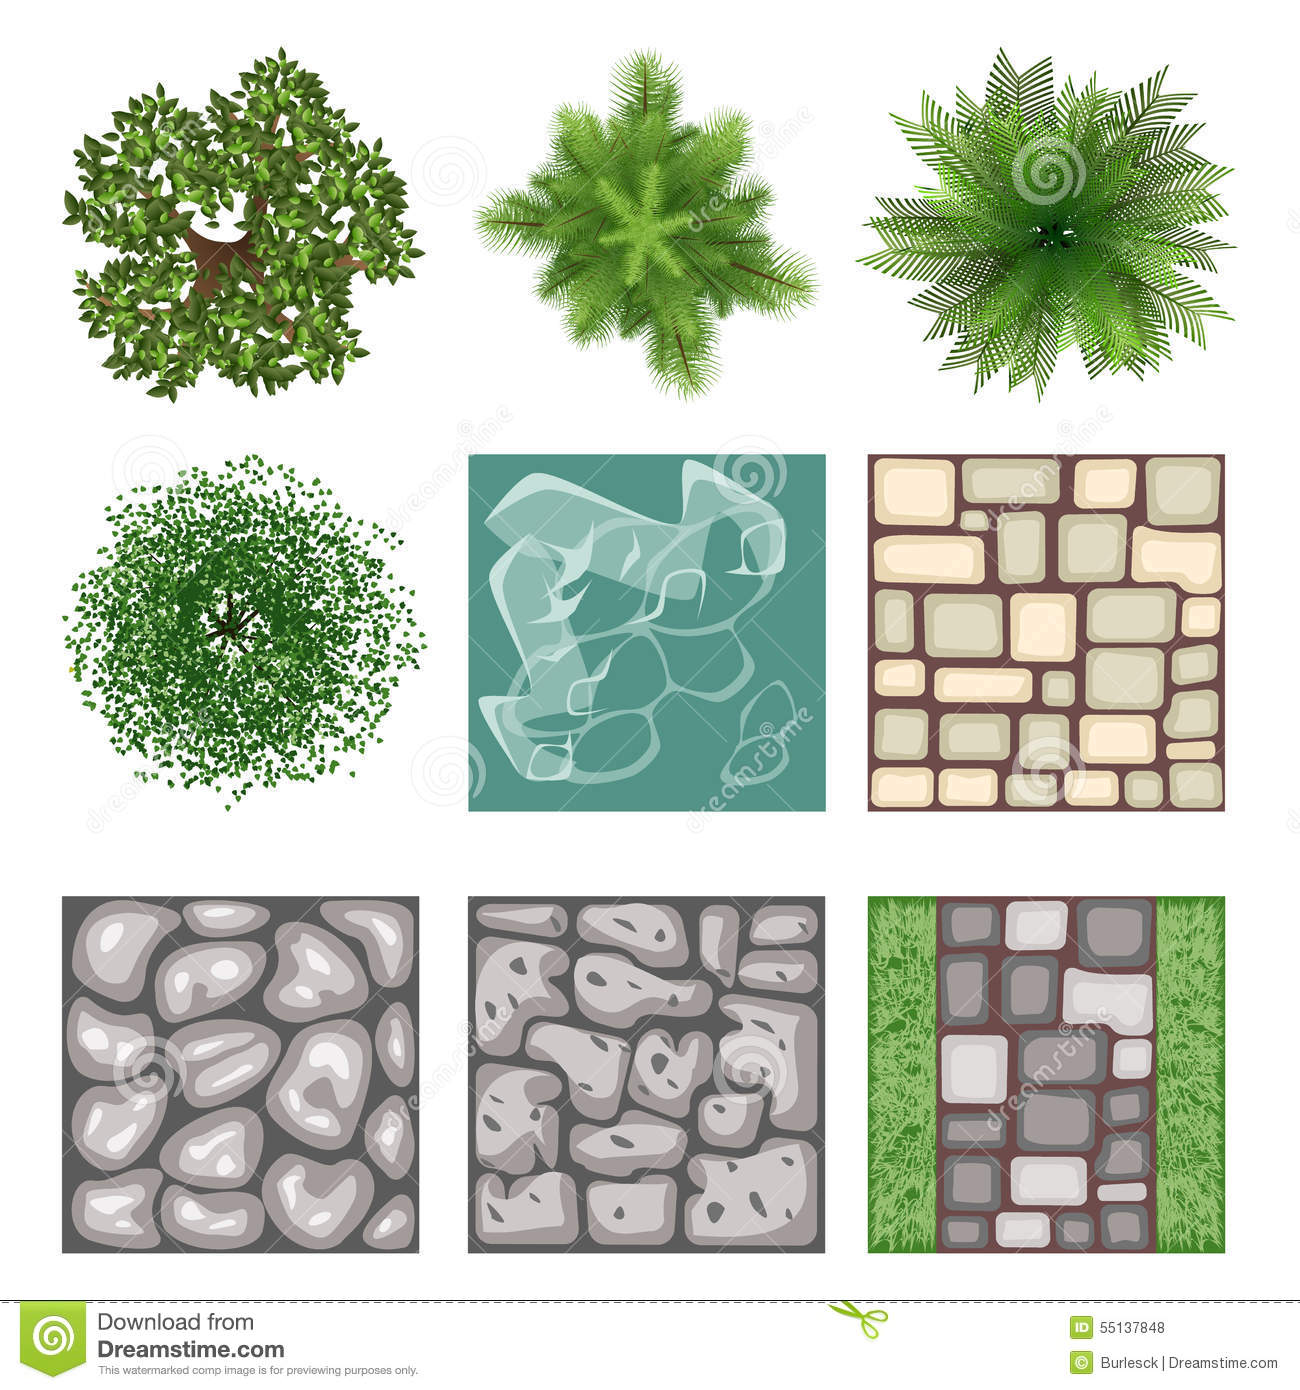 Landscape design top view vector elements stock vector for Landscape design icons